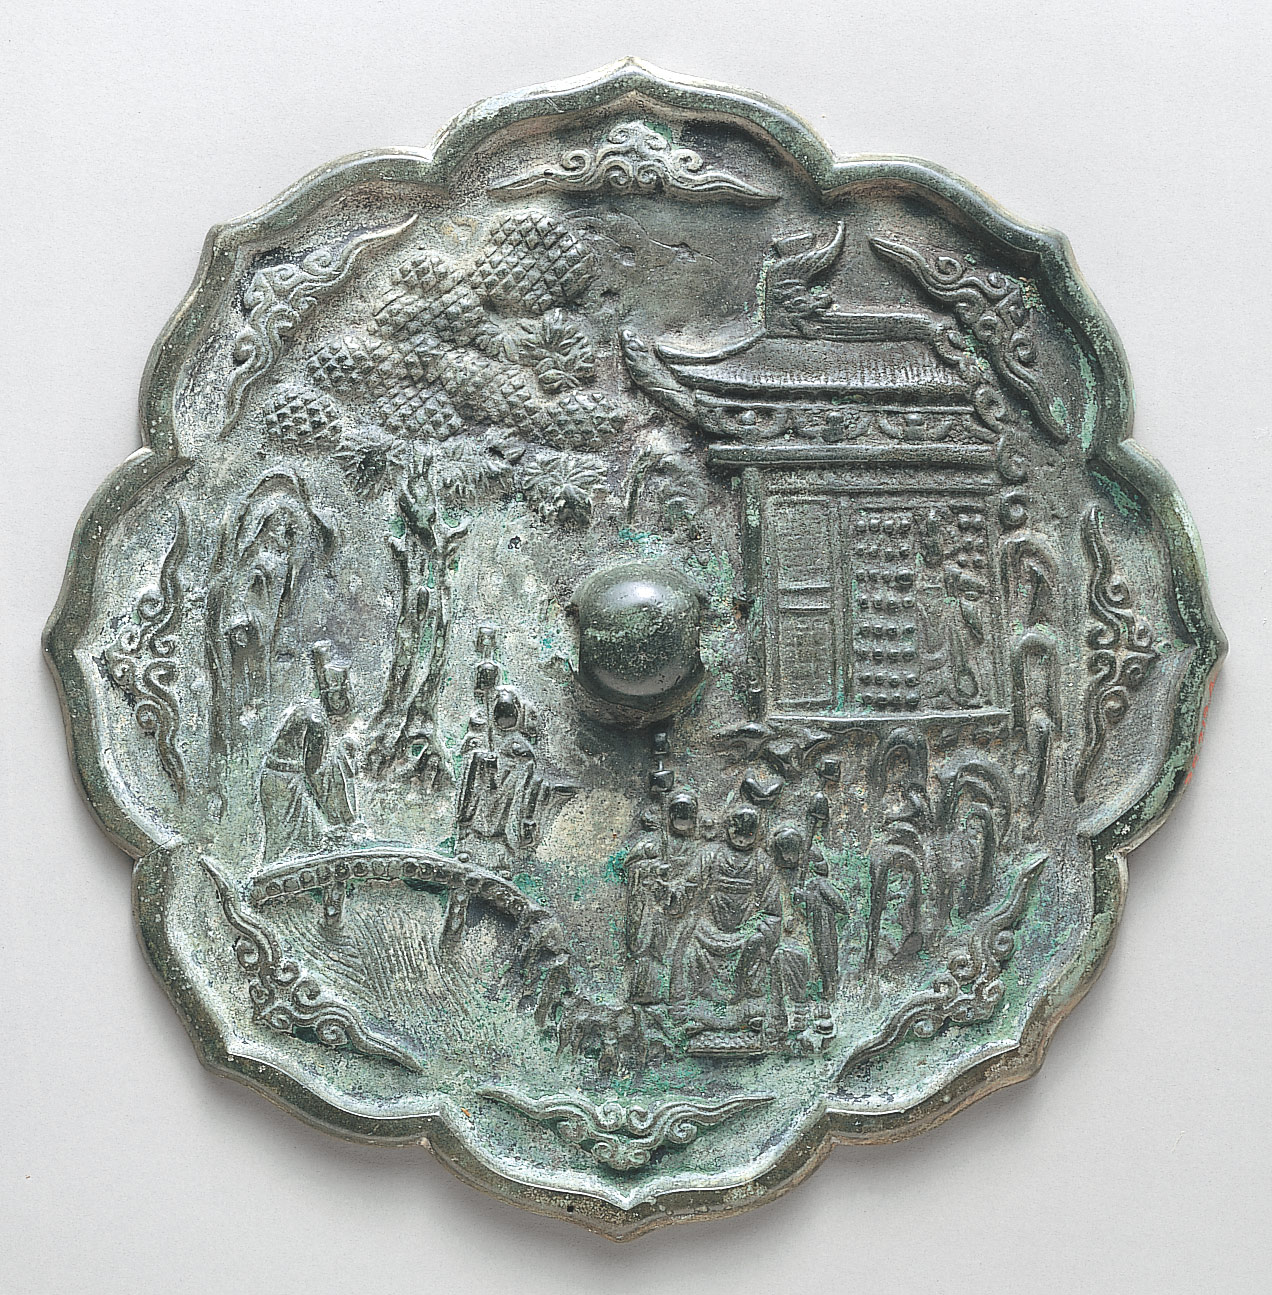 Mirror decorated with figures in a landscape